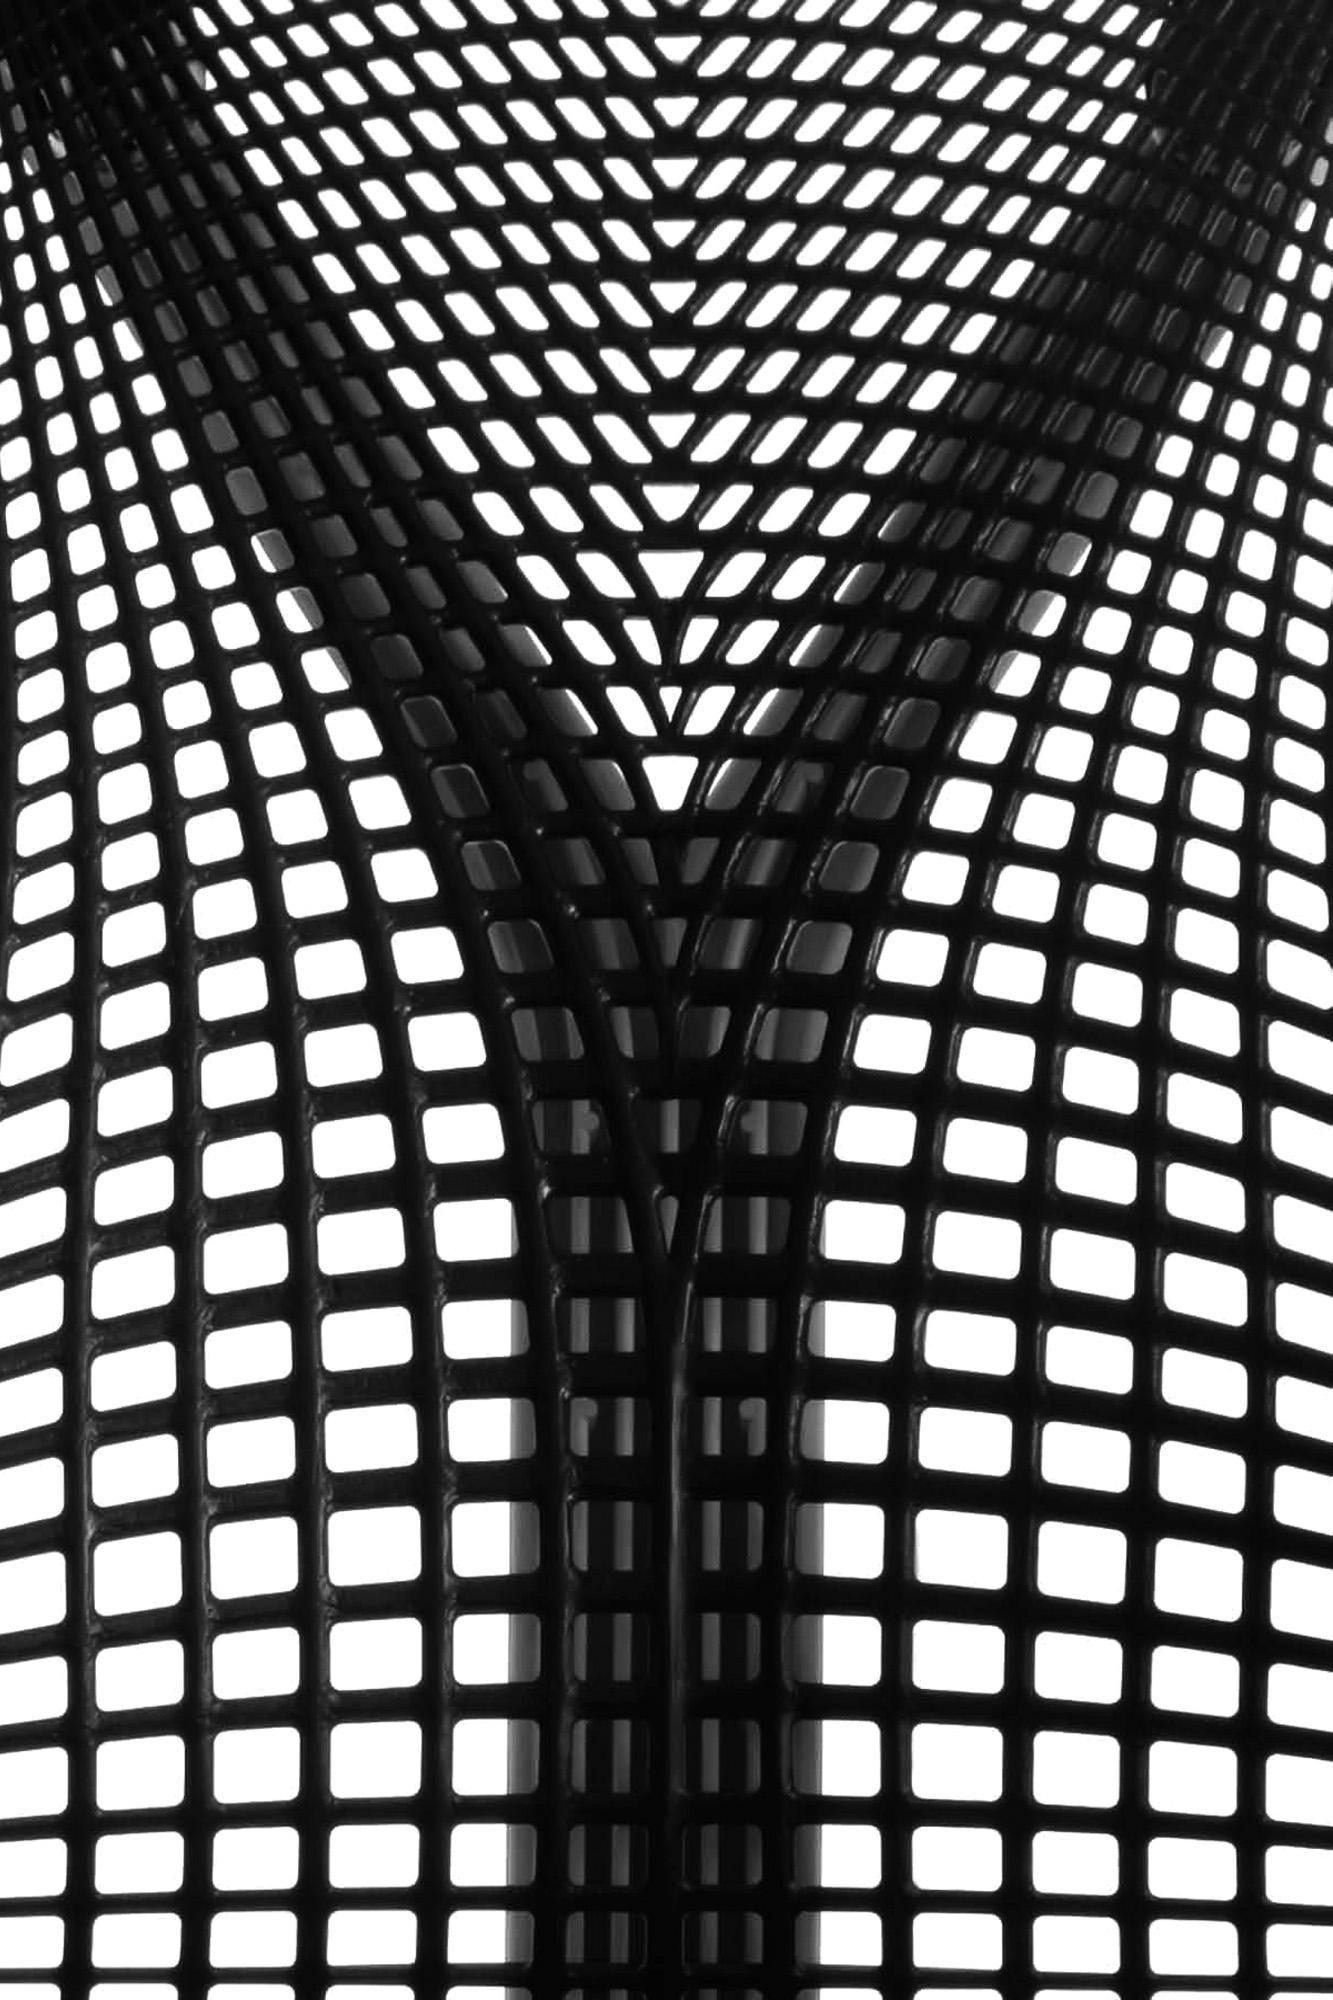 Detail shot showing the webbed back of the 'Sayl' chair by Yves Behar for Herman Miller